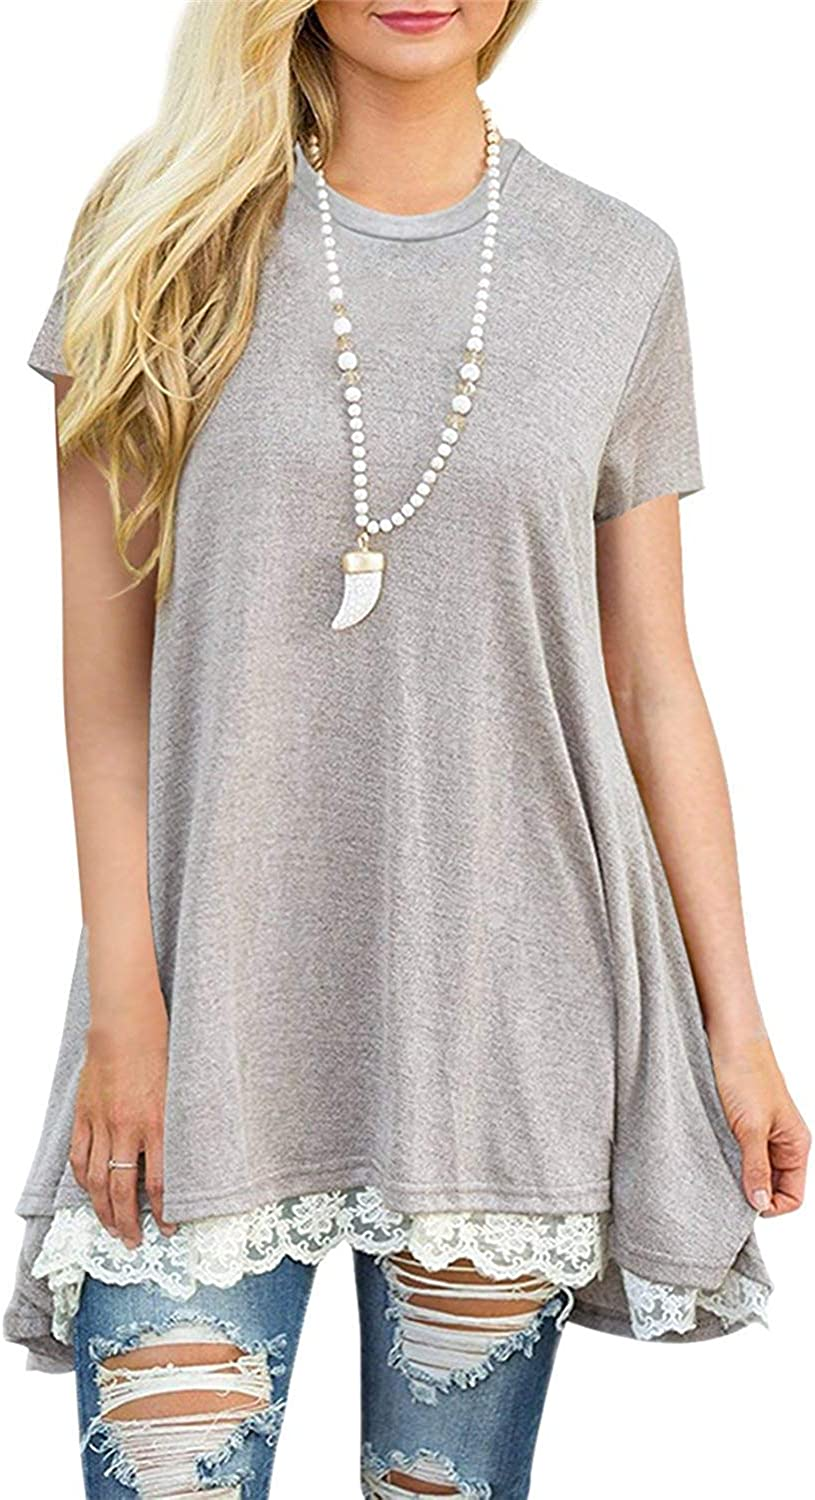 LERUCCI Women's Lace Short Sleeve Tunic Top Blouse Light Grey XLarge